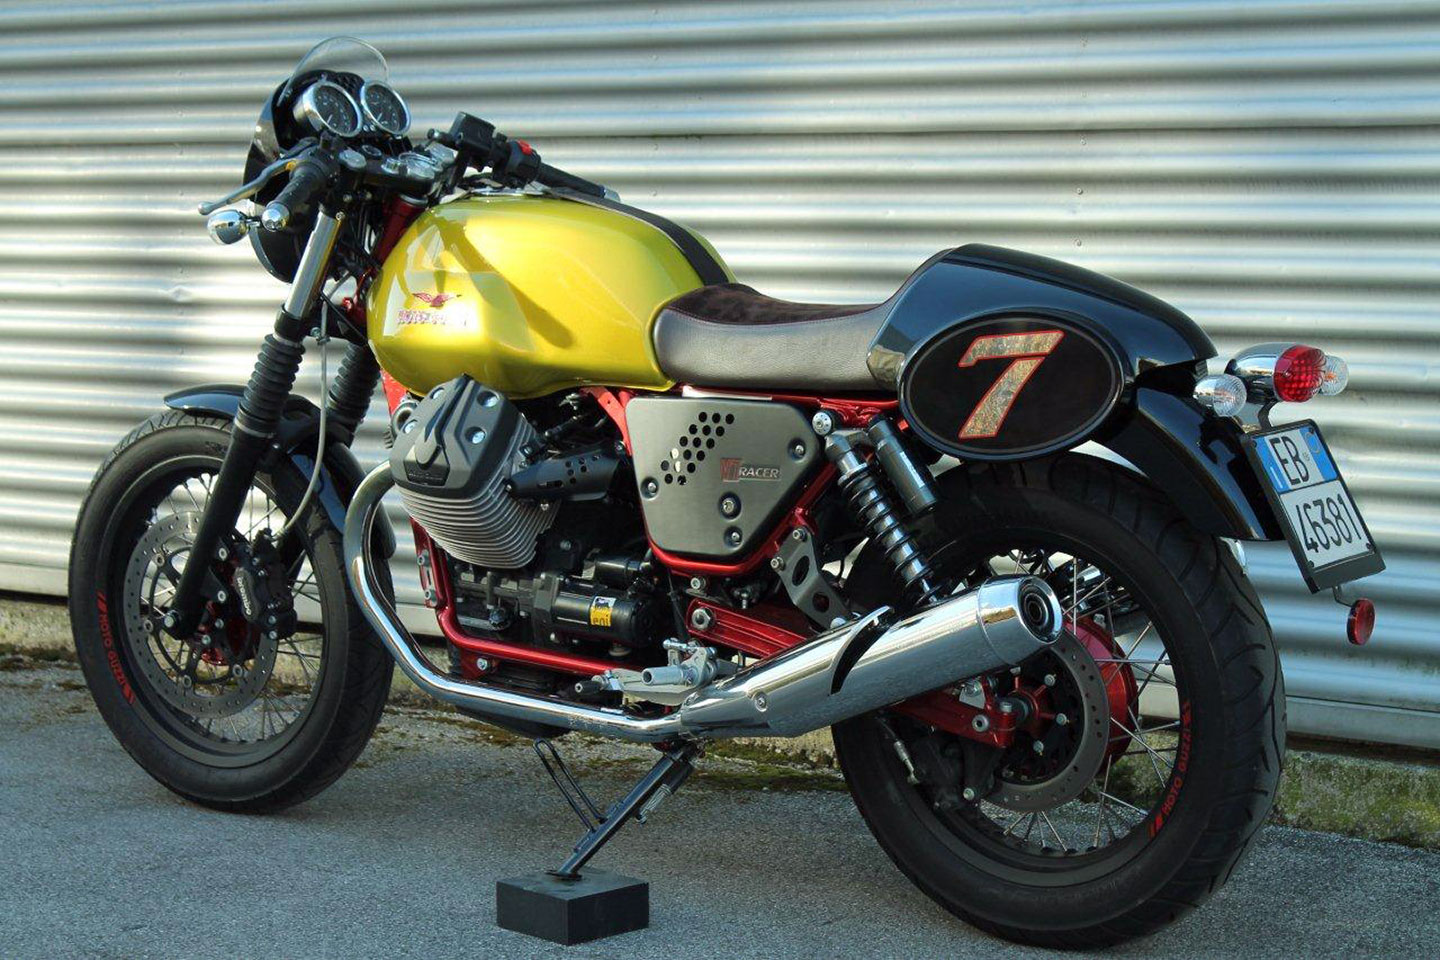 2015 Moto Guzzi V7 II Racer Limited Edition Review